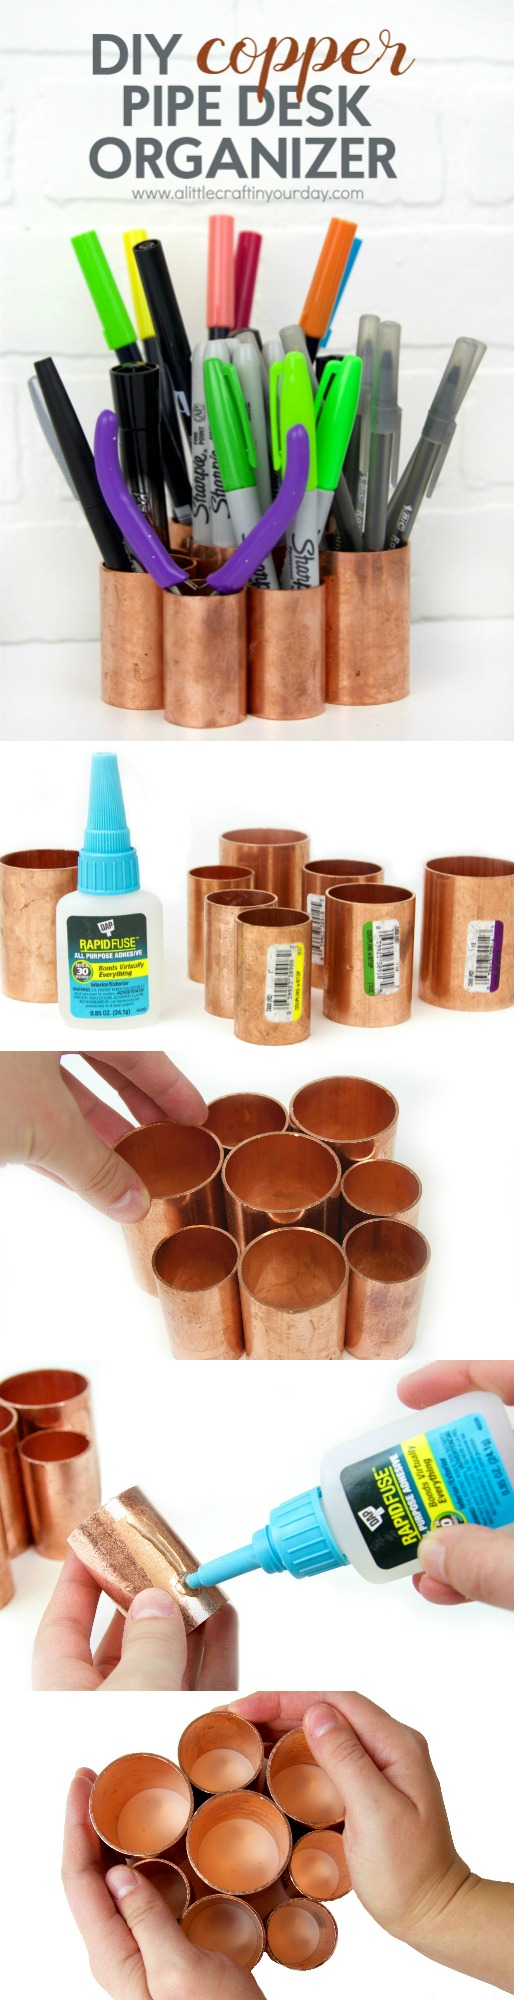 diy_copper_pipe_desk_organizer_1